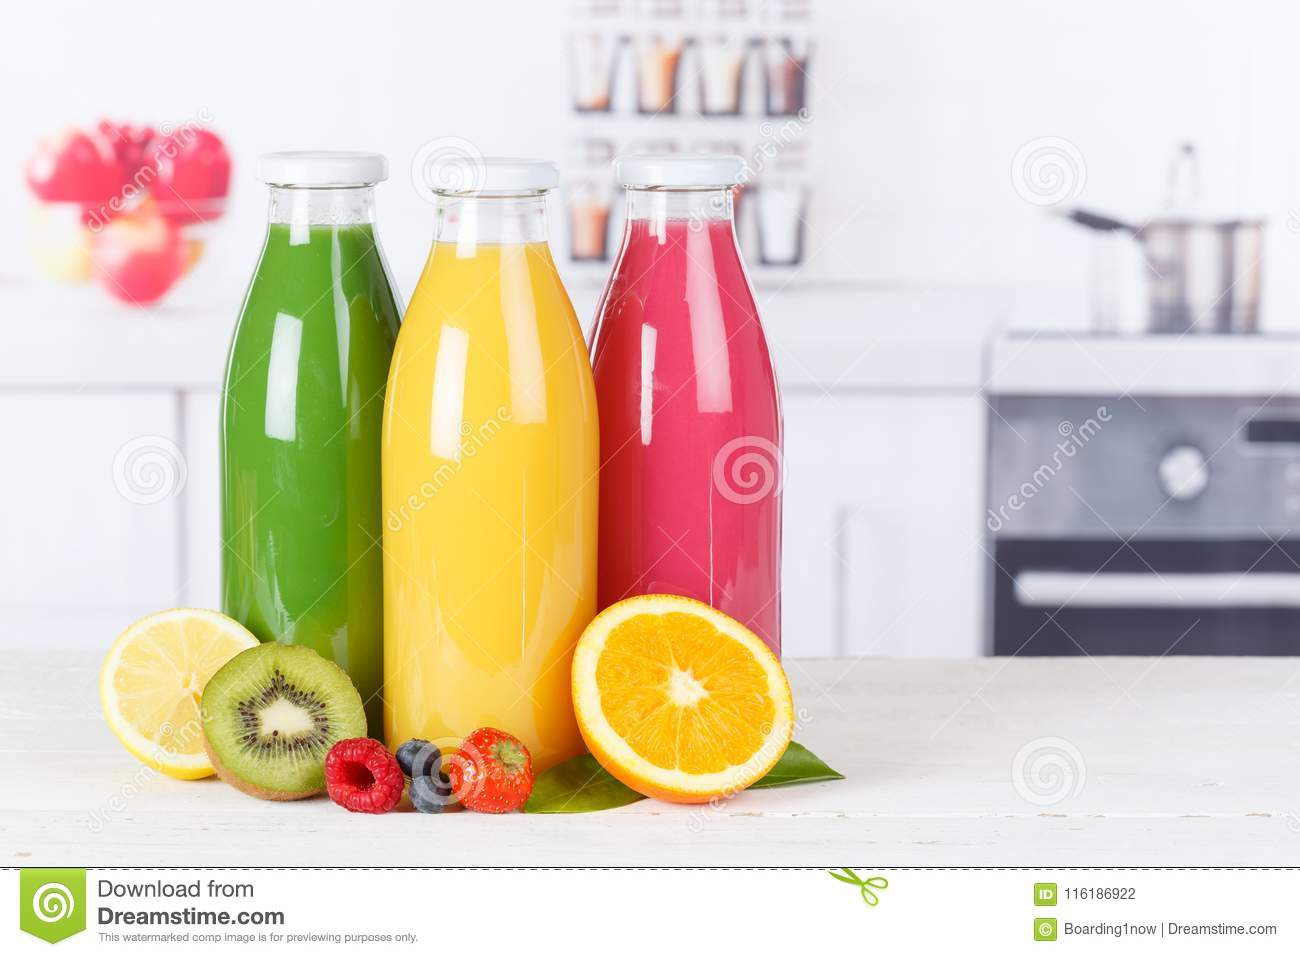 Juice smoothie orange smoothies in kitchen copyspace bottle fruit fruits